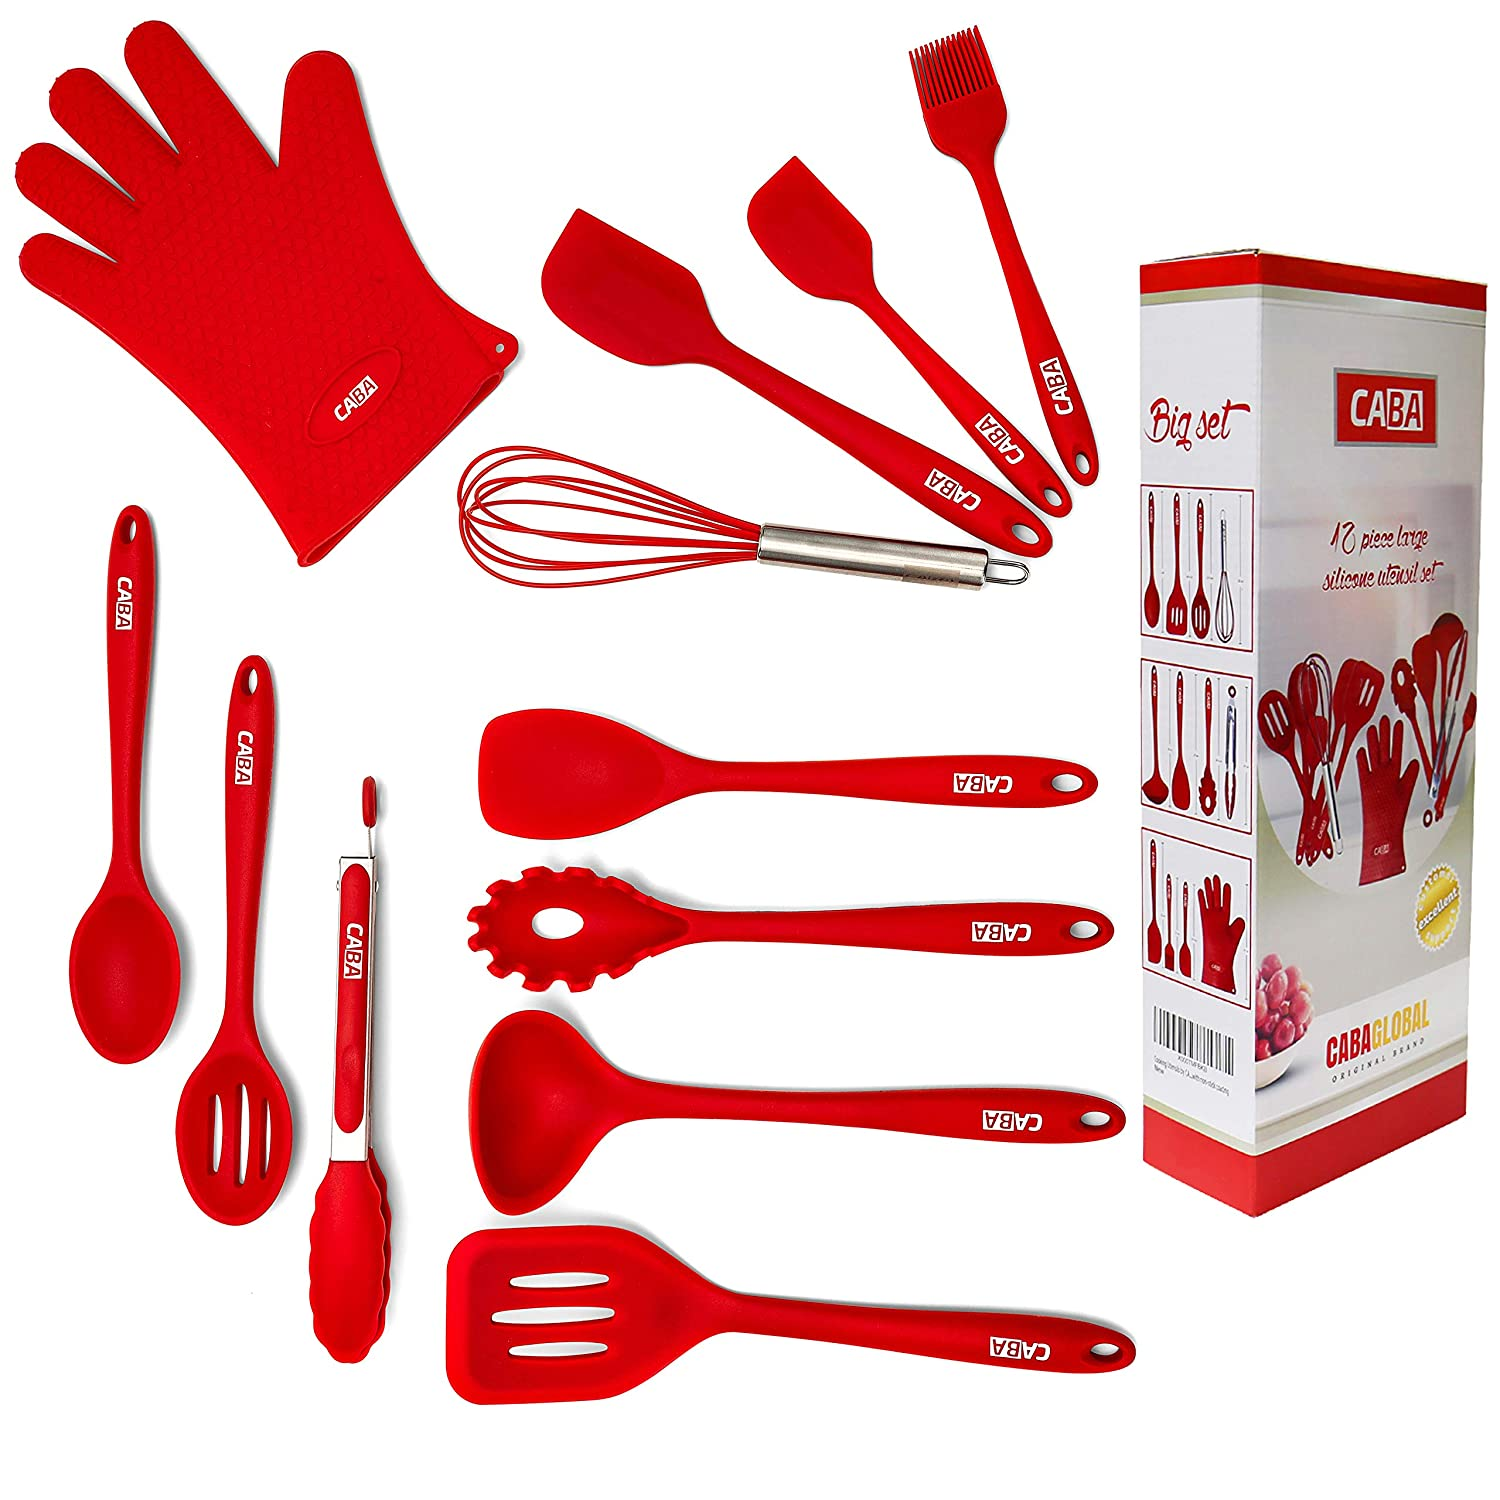 The Chef Craft Silicone Big Kitchen Utensils Set by CABA (12 Pieces Set) Covers all Kitchen Needs Non-stick Non-Slip RED Colour Kitchen Utensils Set Easy to Use and Reduced Cleaning Easily wash in seconds Silicone Kitchen Utensil Set Heat Resistant Hygien